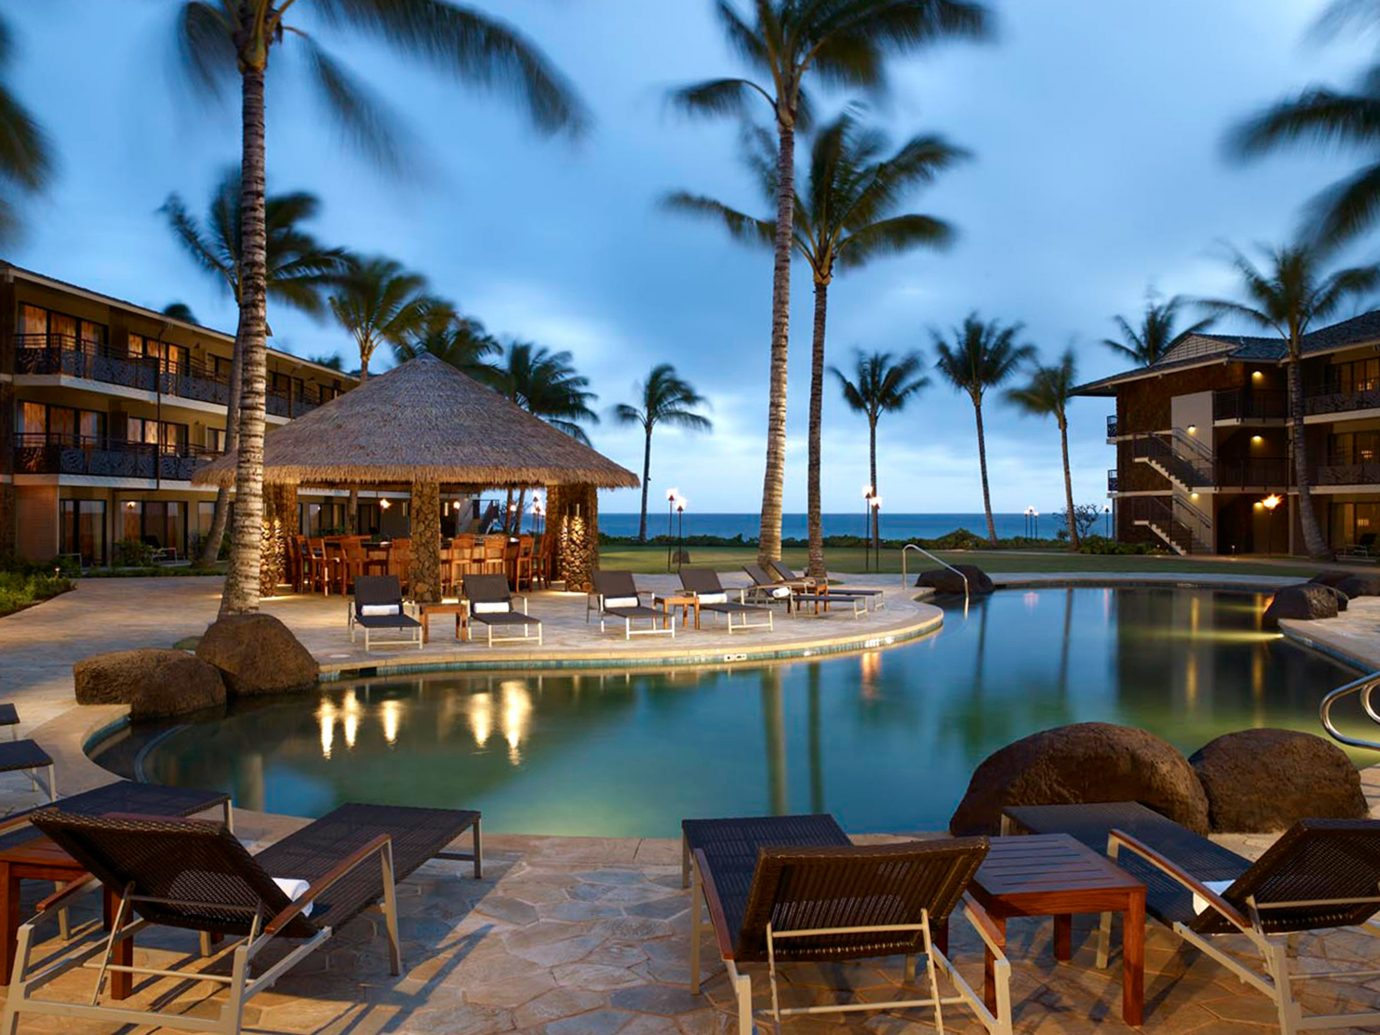 Bar Deck Exterior Honeymoon Hotels Island Luxury Outdoors Pool Resort Romance Romantic outdoor sky chair tree property lawn estate vacation swimming pool home condominium real estate Villa lined set several swimming